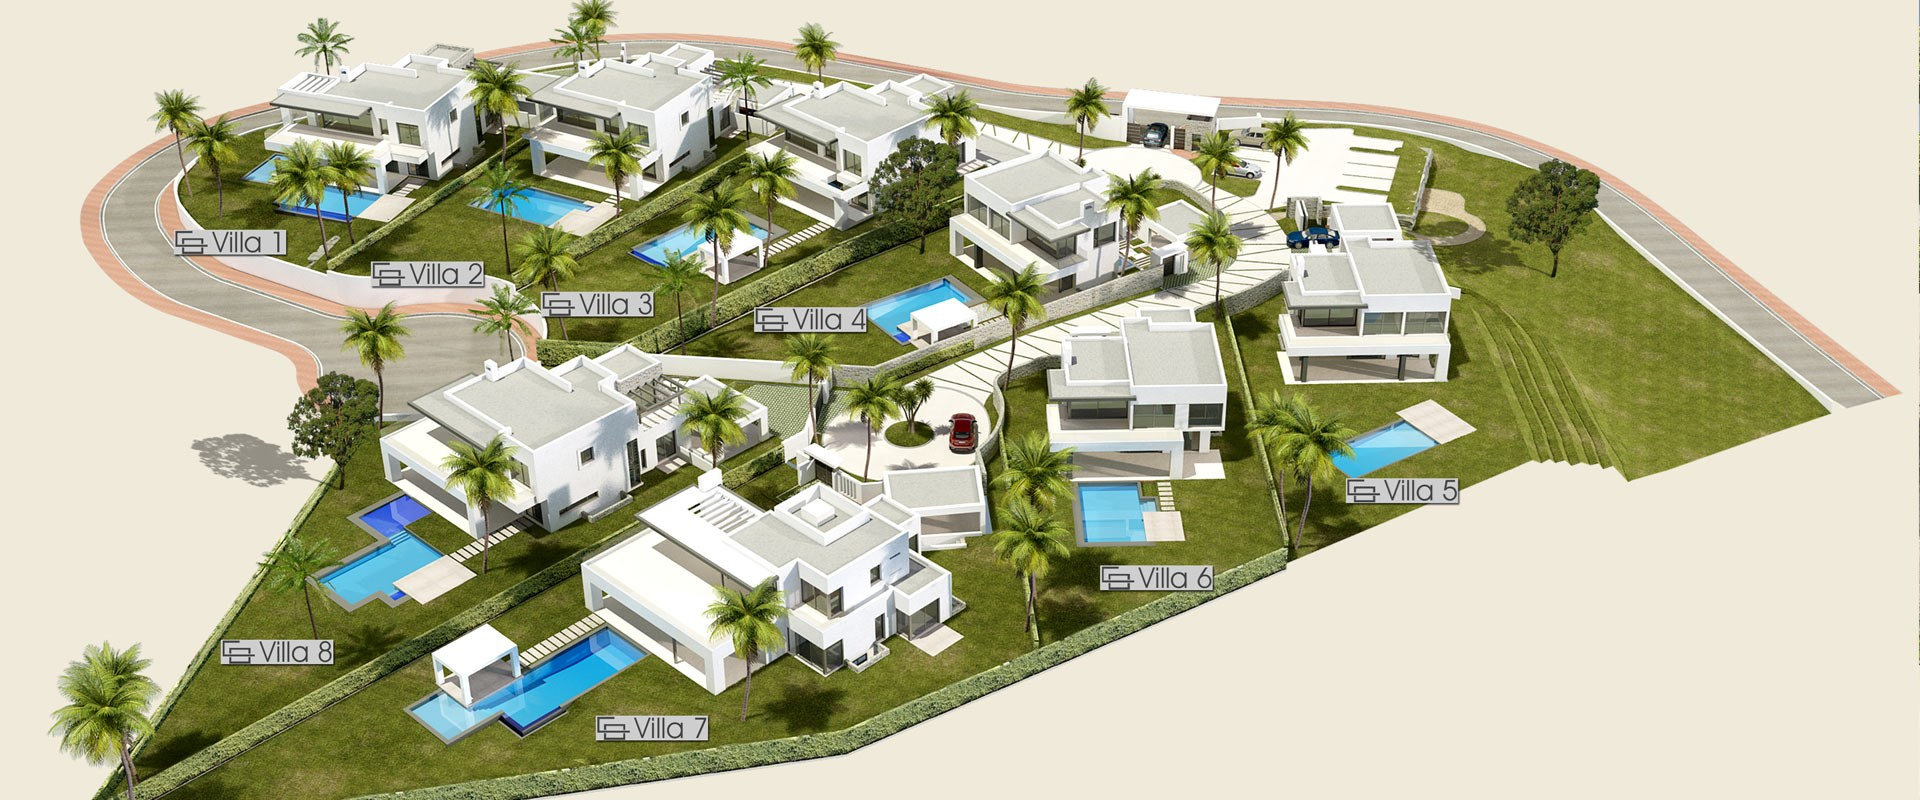 FEASIBILITY STUDY FOR A MIXED-USE COMPLEX – 835,619 SQM